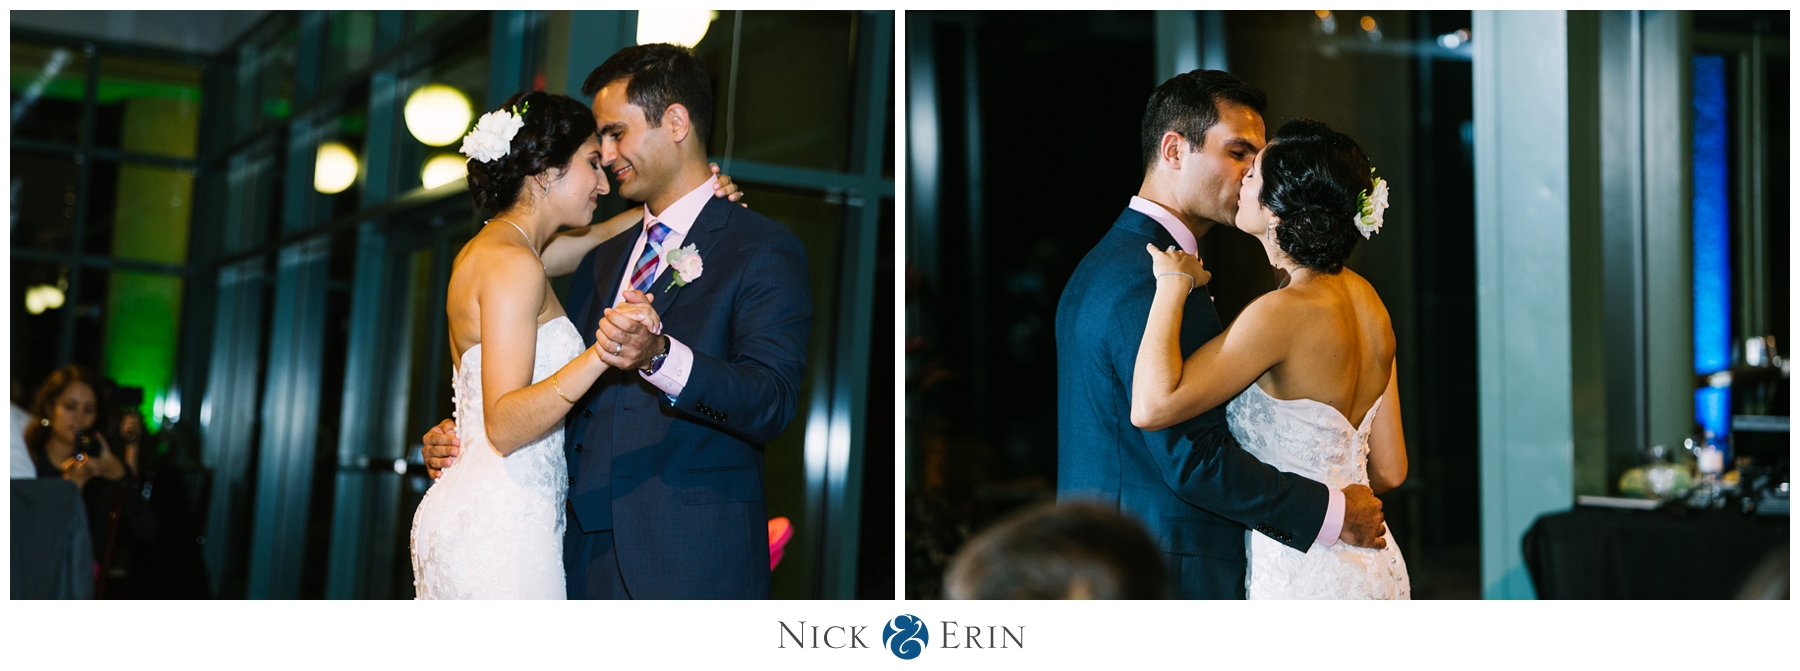 Donner_Photography_Vienna Virginia Wedding_Azadeh & Nima_0046